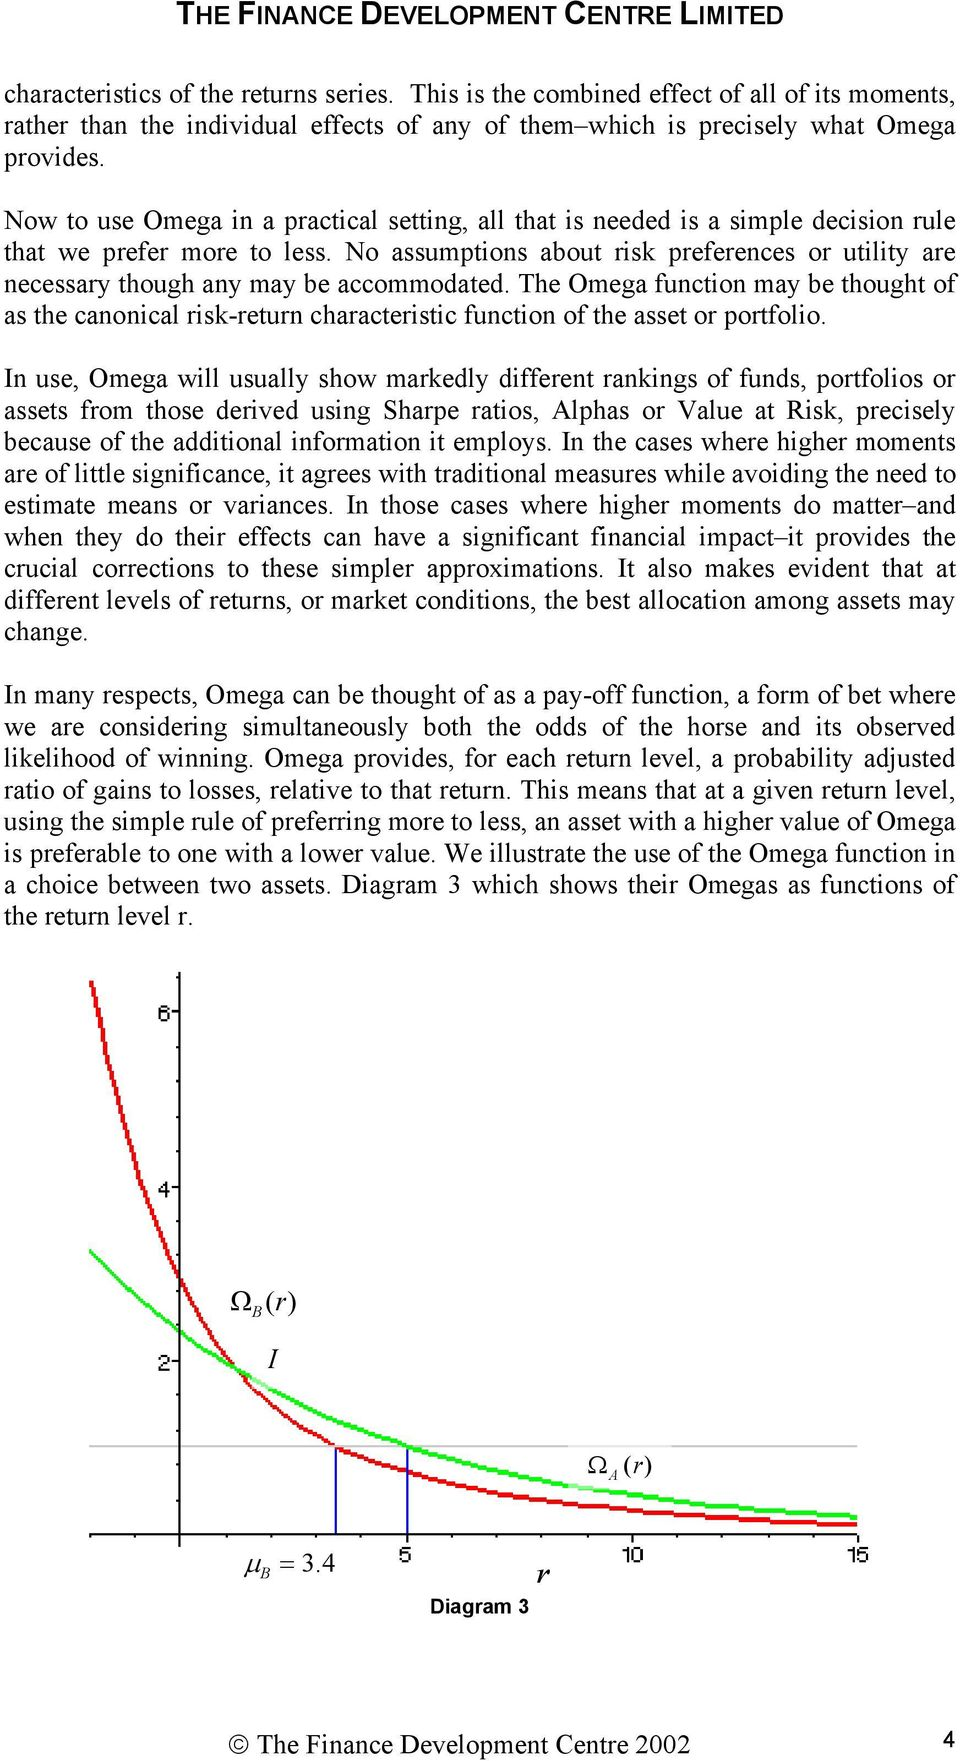 The Omega function may be thought of as the canonical isk-etun chaacteistic function of the asset o potfolio.